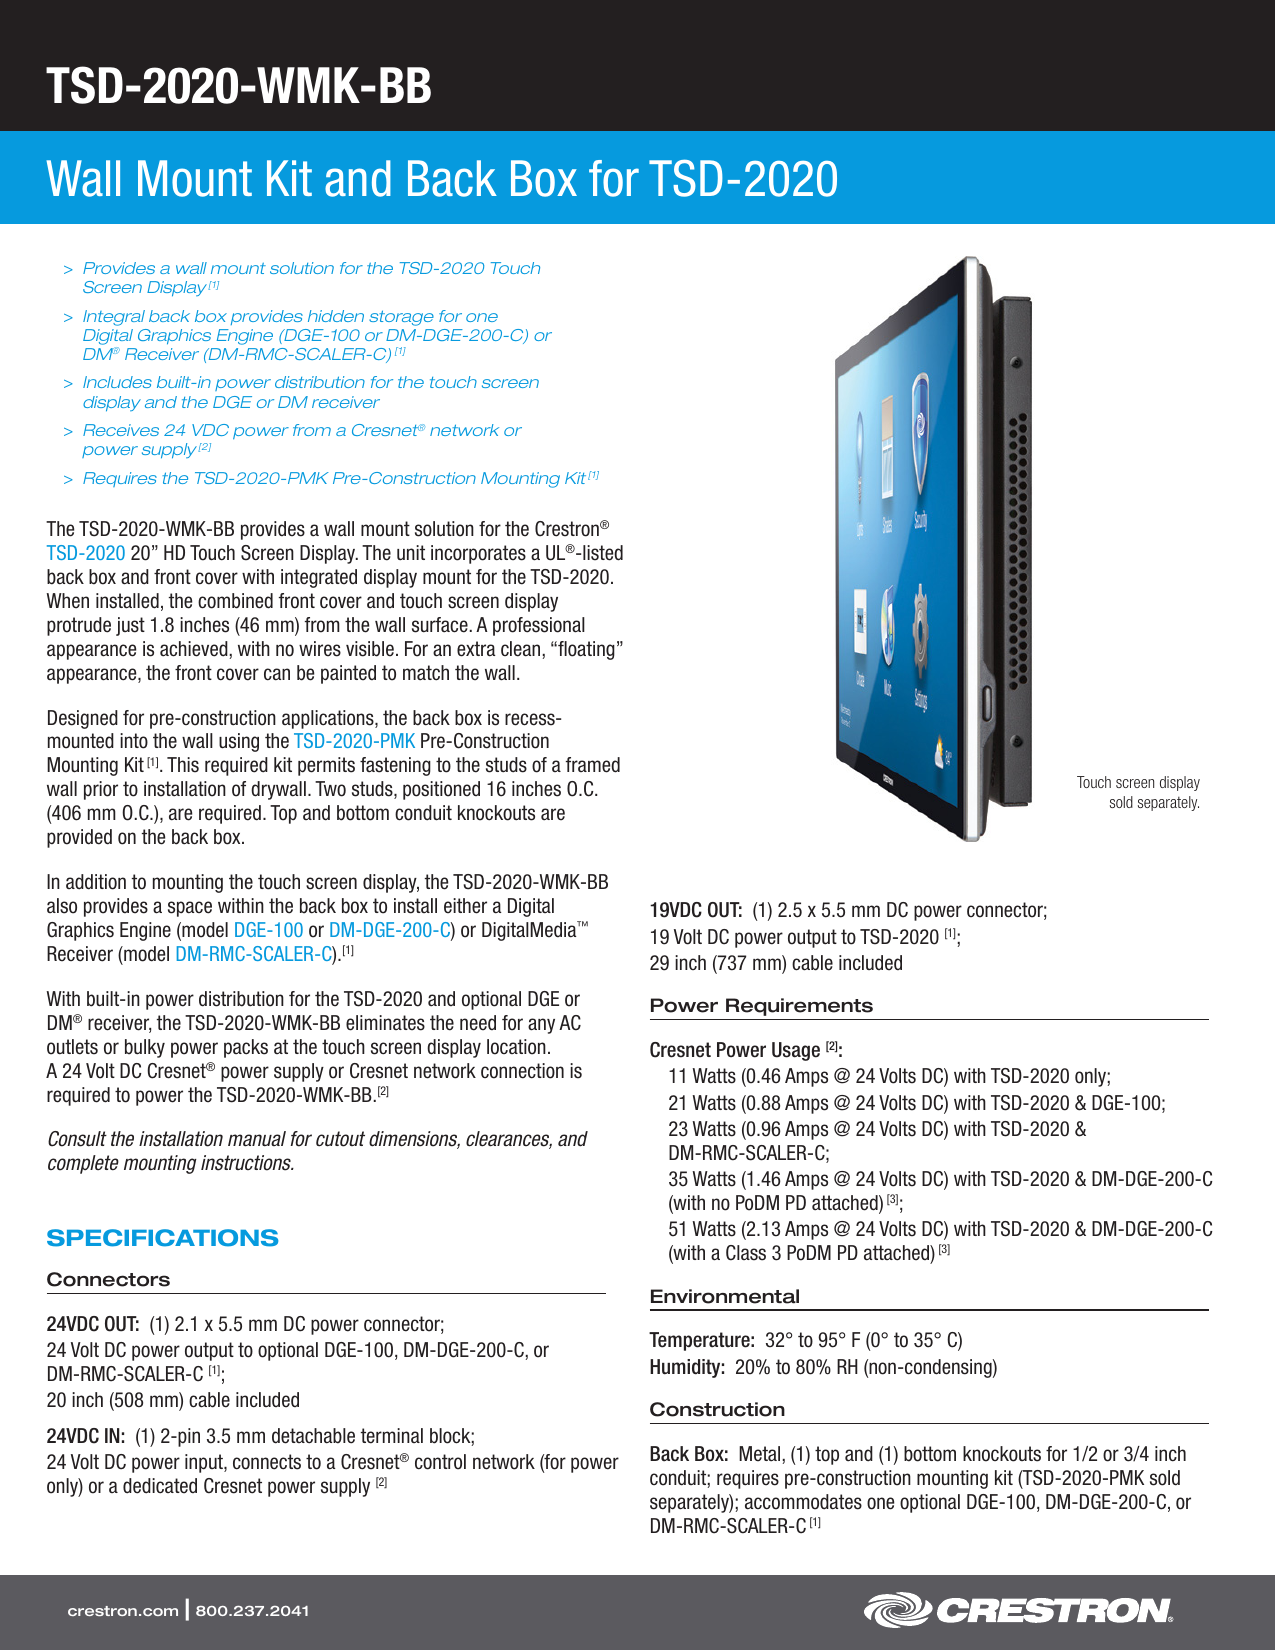 Product Specifications: TSD-2020-WMK-BB